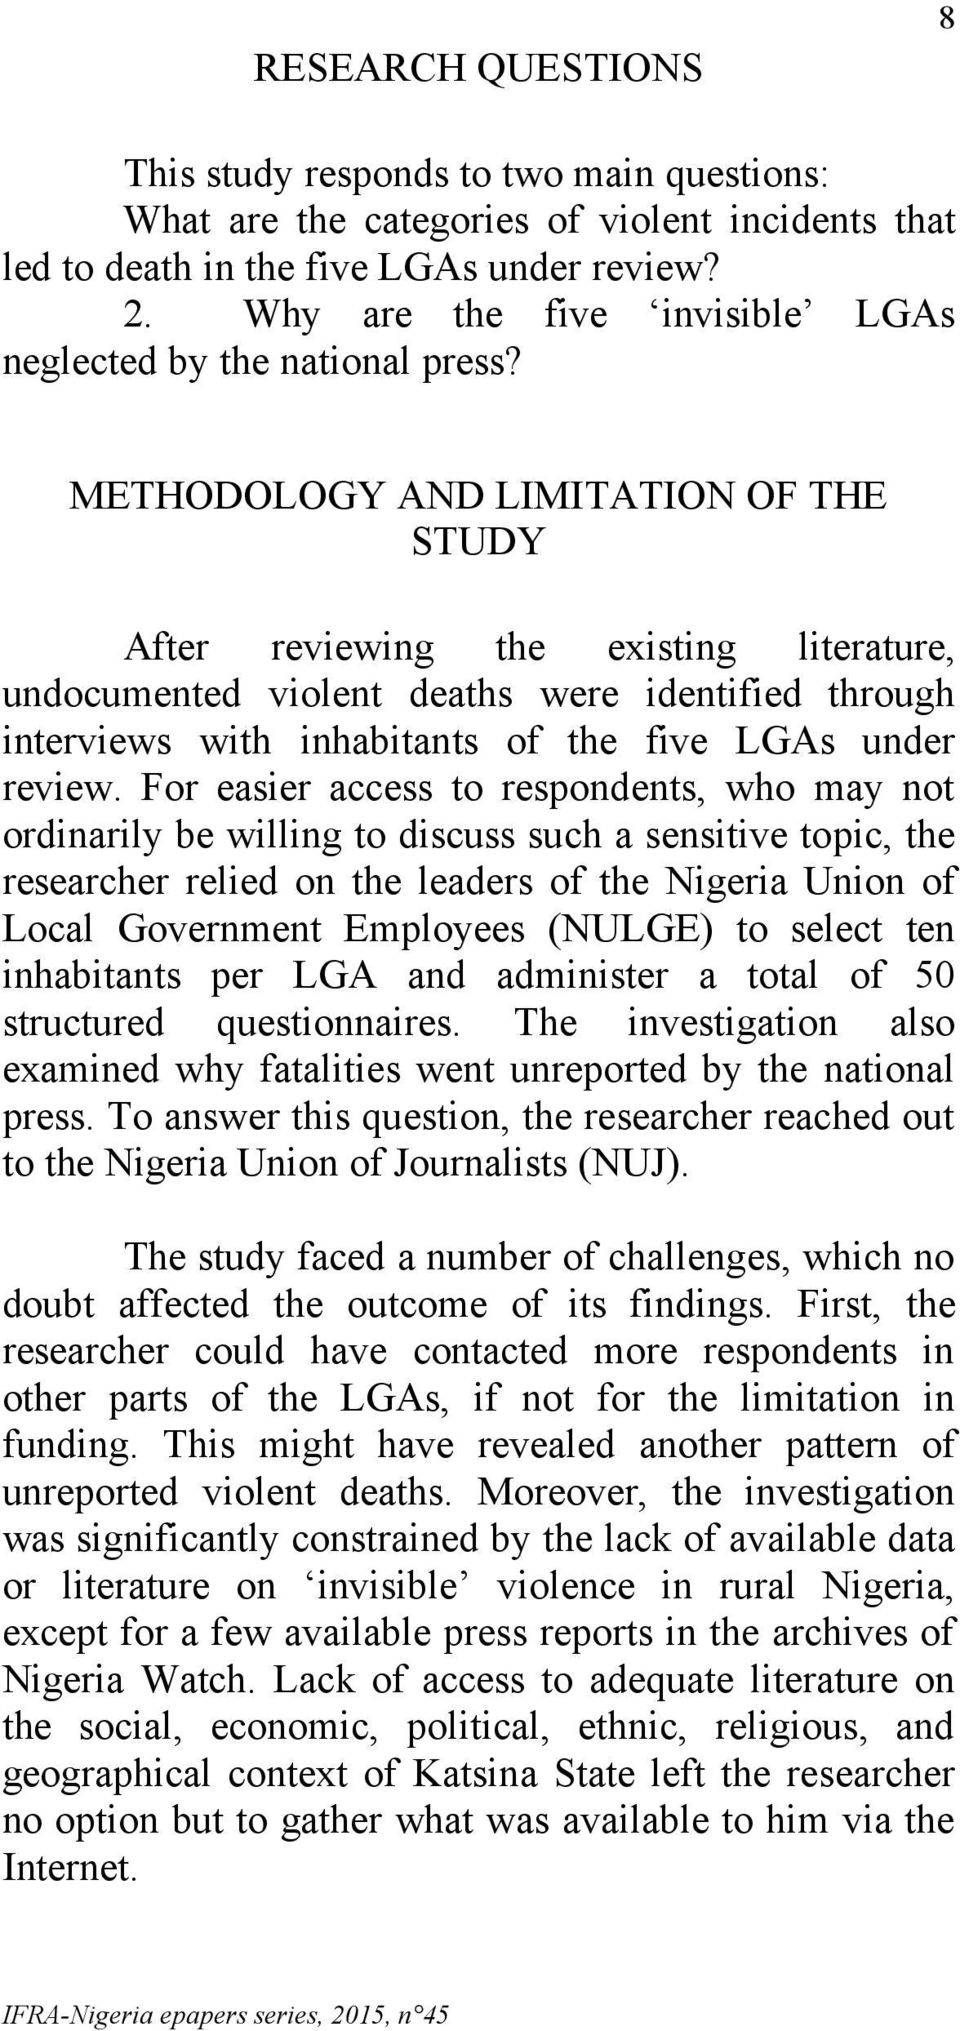 METHODOLOGY AND LIMITATION OF THE STUDY After reviewing the existing literature, undocumented violent deaths were identified through interviews with inhabitants of the five LGAs under review.